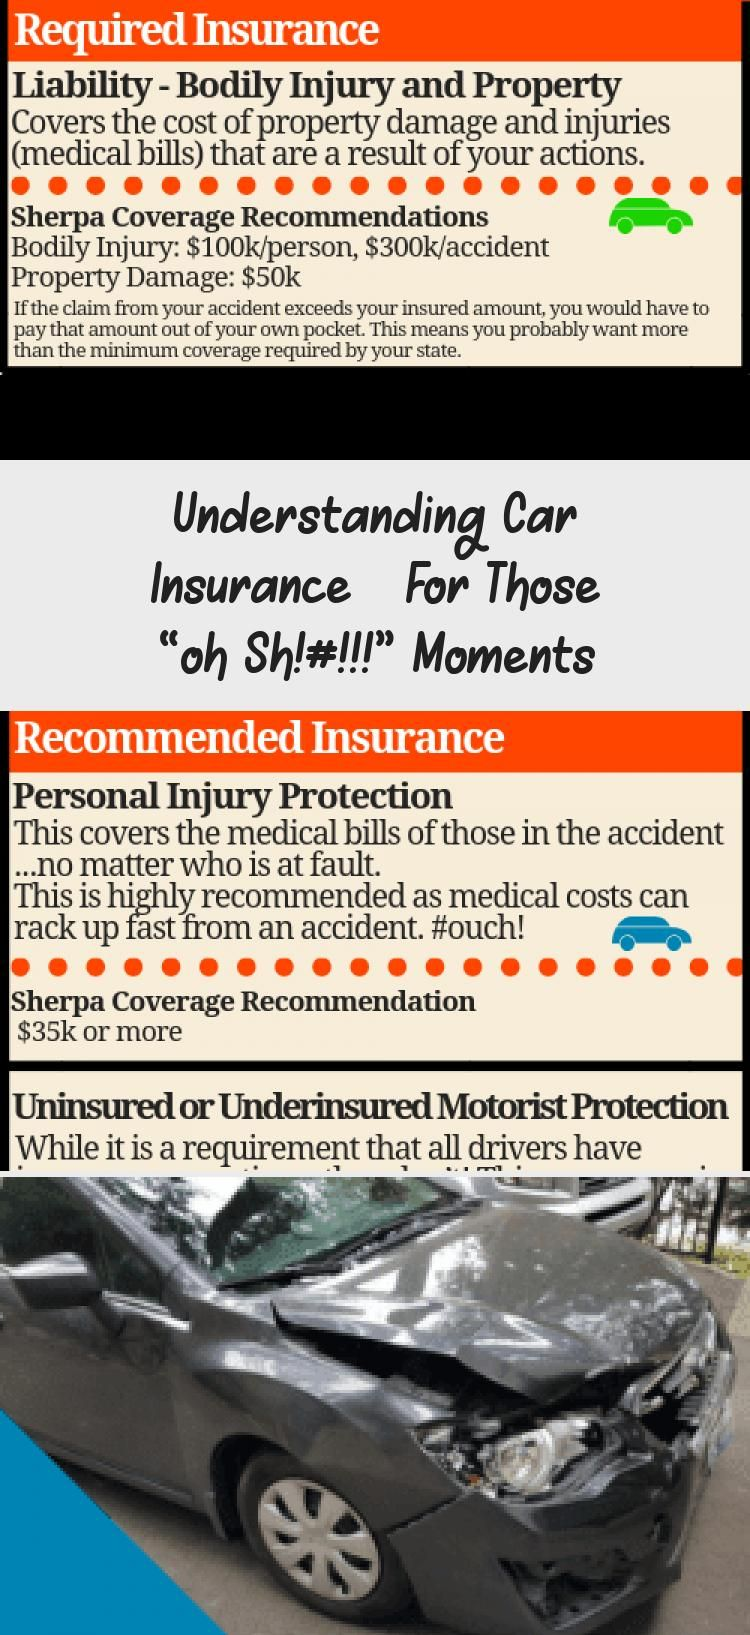 Understanding Car Insurance For Those Oh Sh Moments In